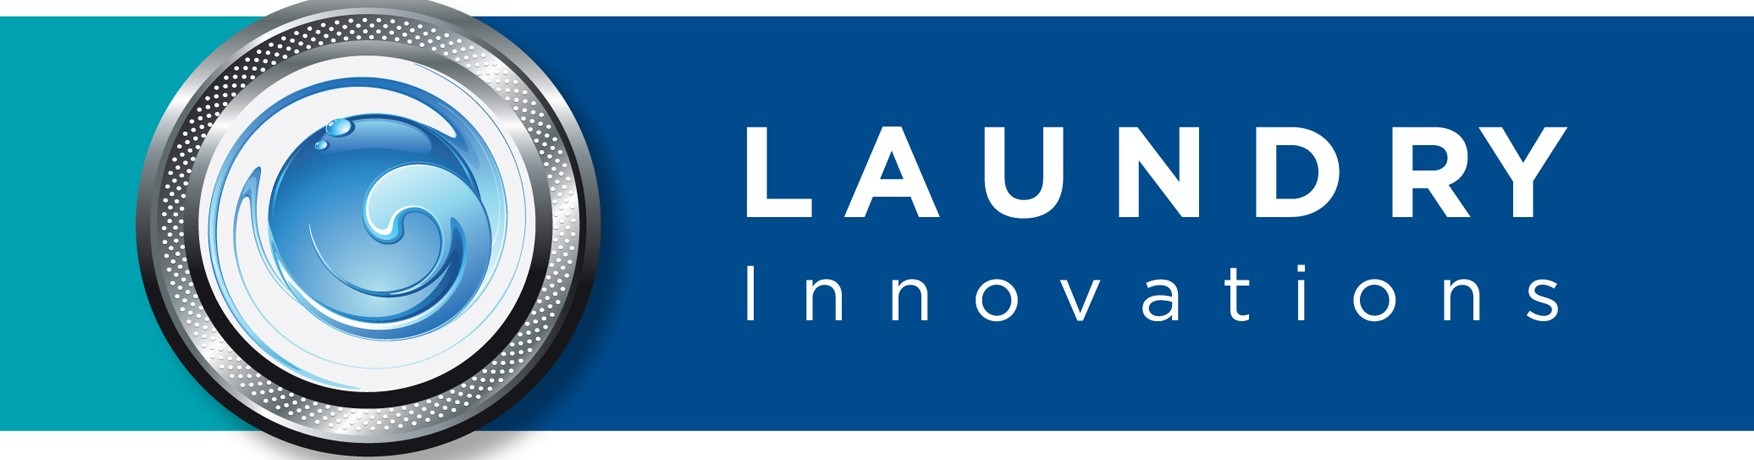 Laundry Innovations Pty Ltd is an Australian distributor of the Electrolux-Wascator Washer /Extractors, Tumbler Dryers, Flatwork Ironers, Barrier Washers, sluices, and finishing equipment.